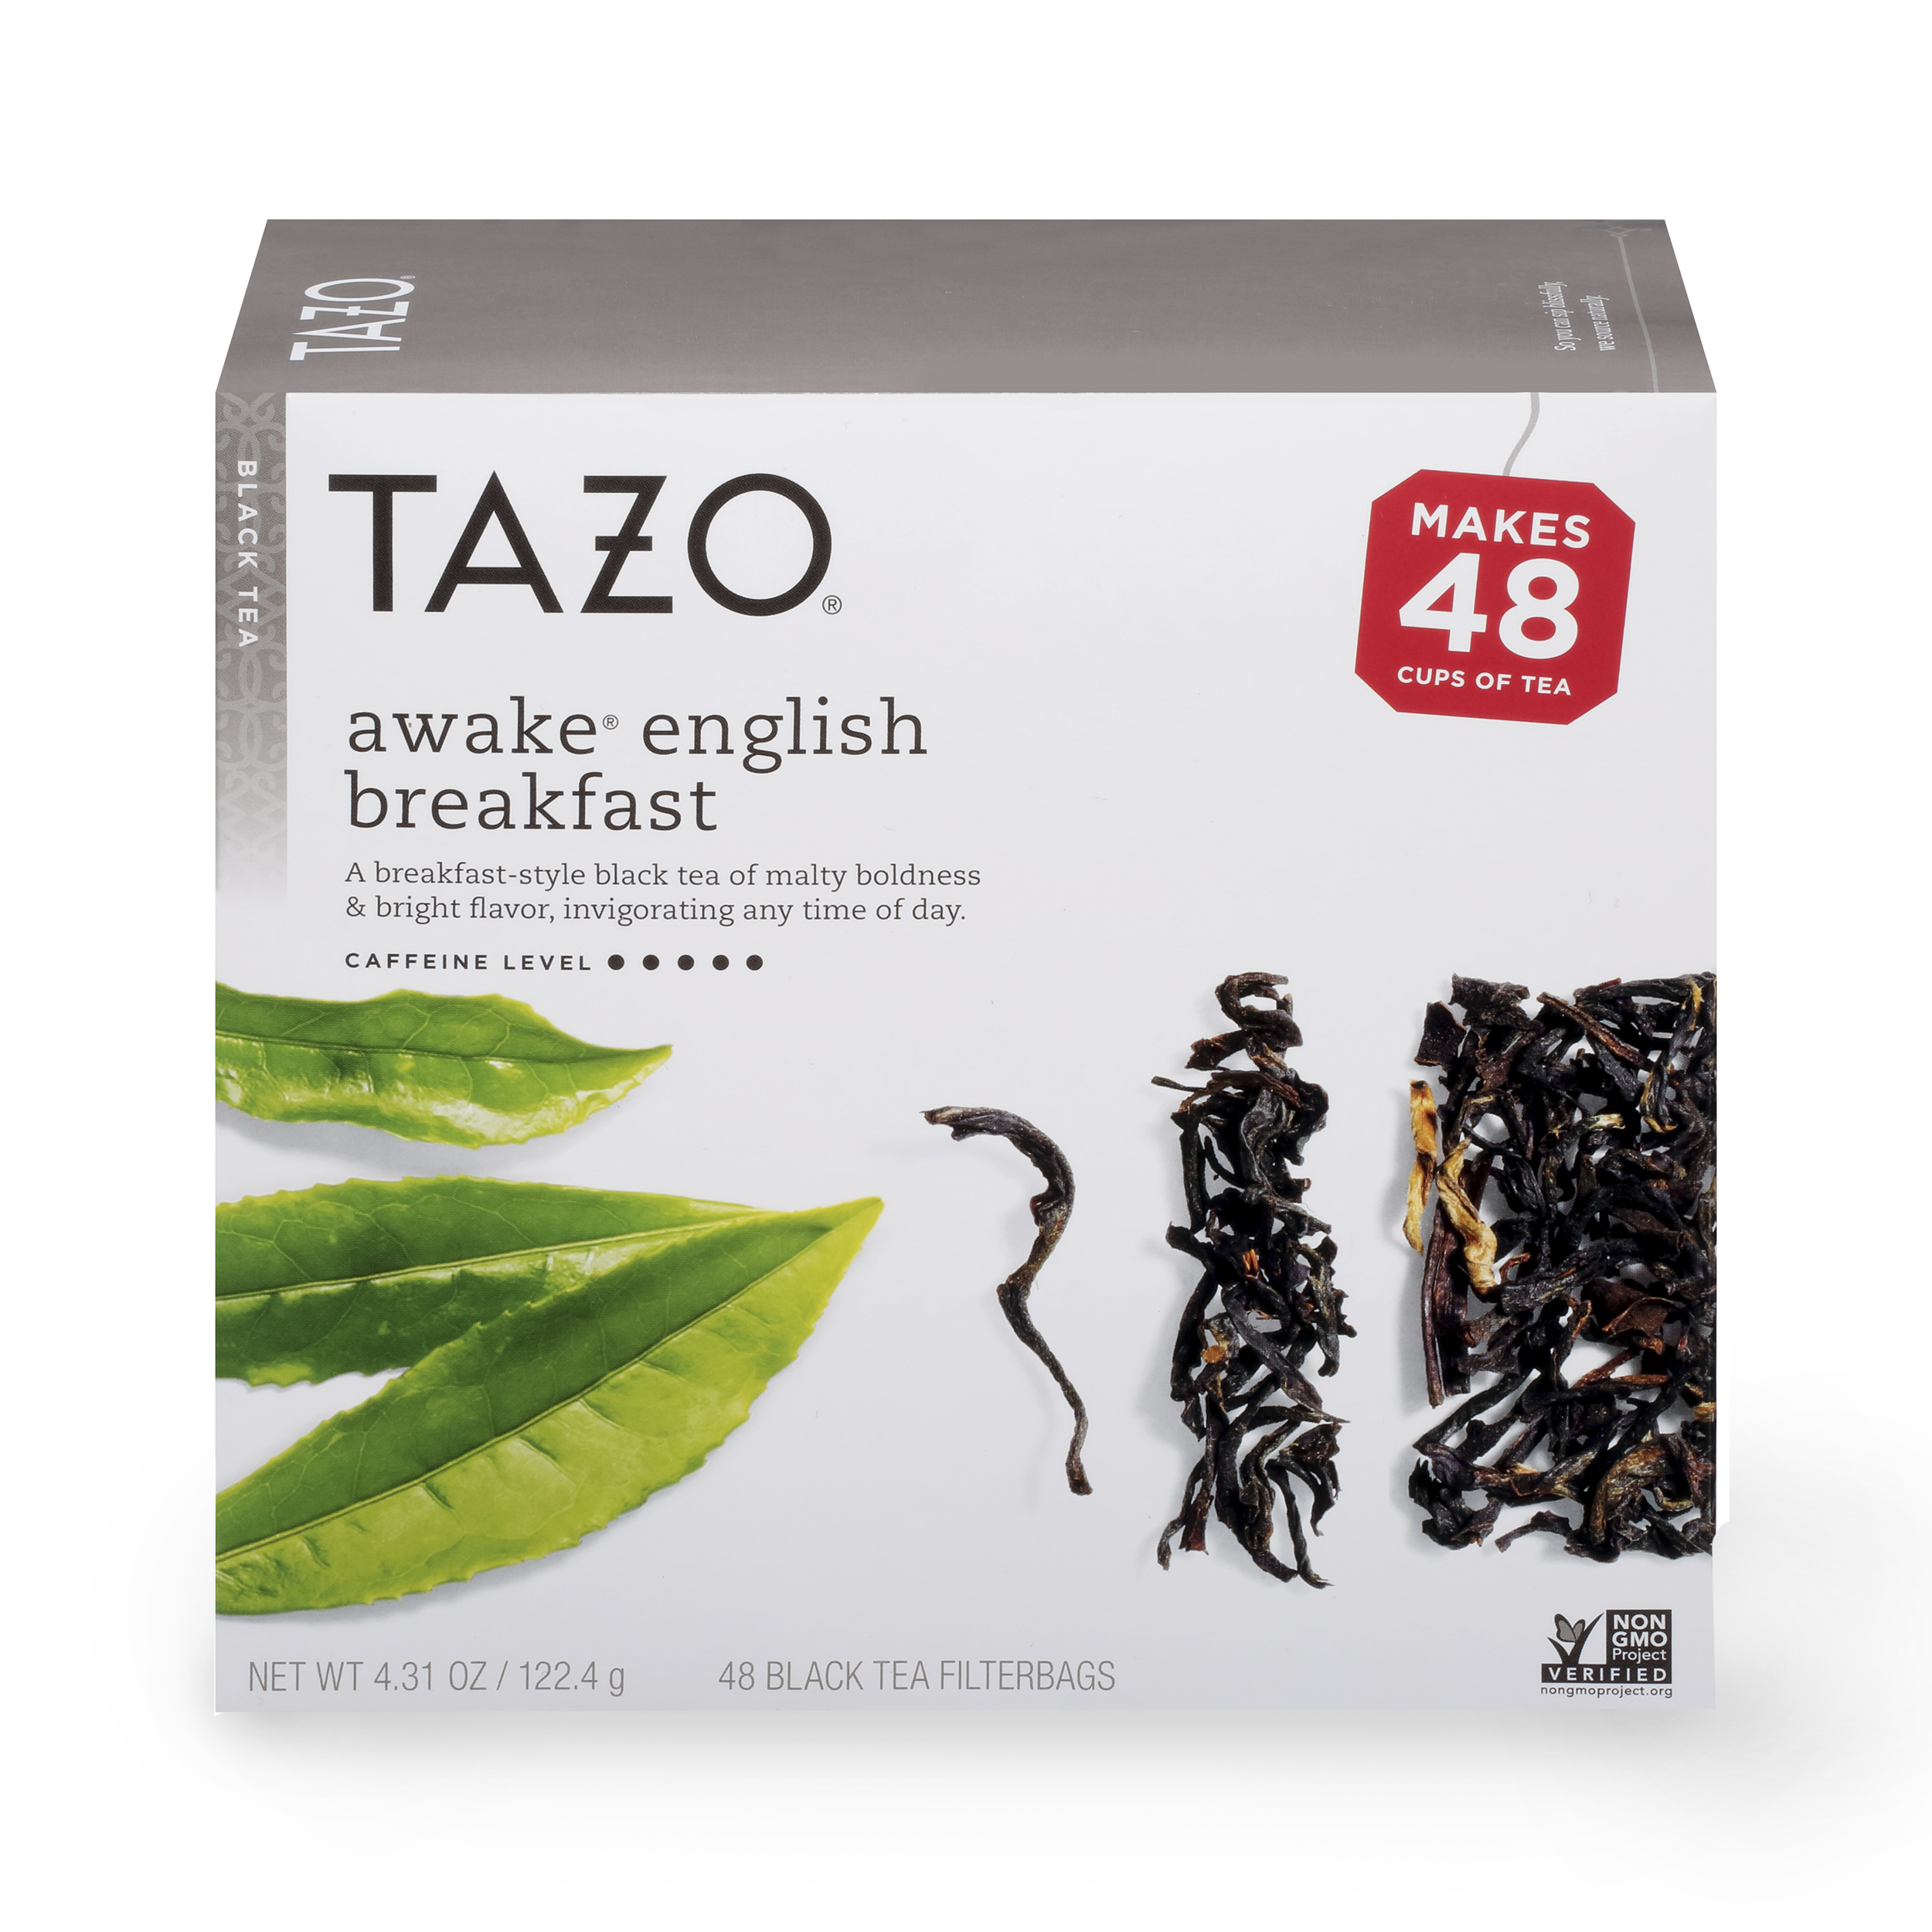 Tazo Awake English Breakfast Black Tea Filterbags (48 count)